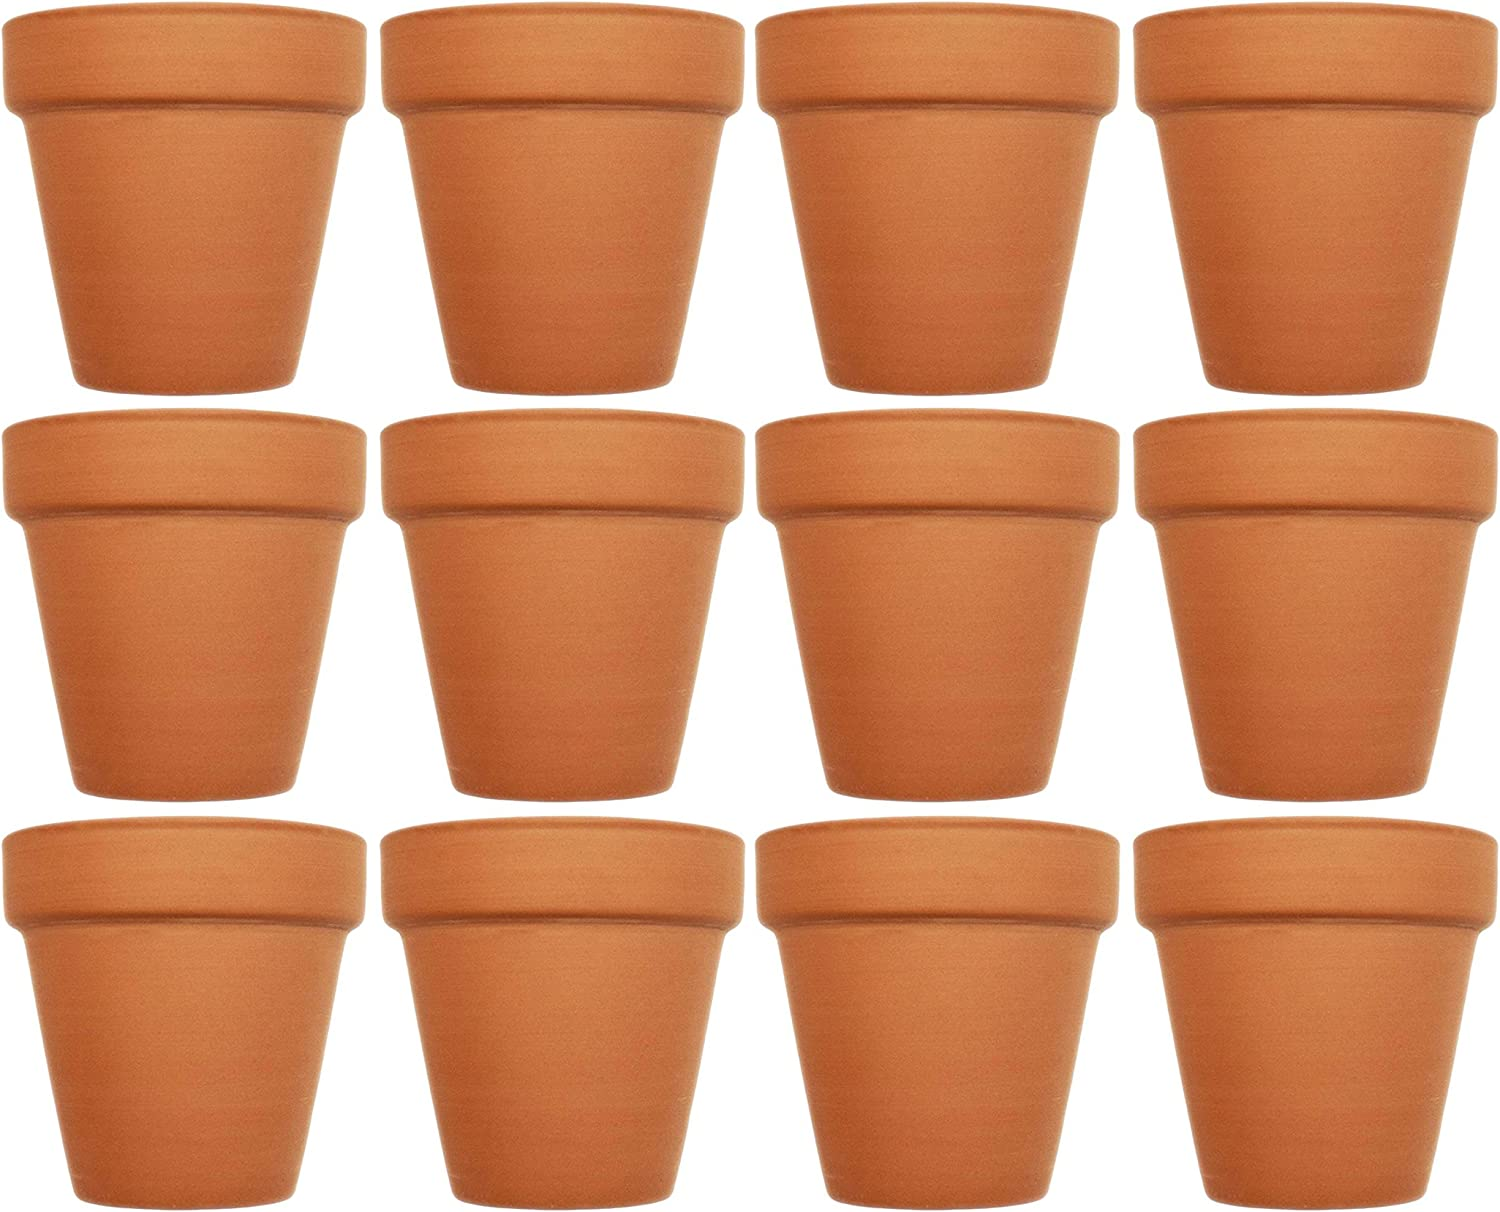 Set of 12 Terra Cotta Pots! Perfect for Vegetable or Flower Gardens! Measures - 3.75inx3.93in.d,x0.175in